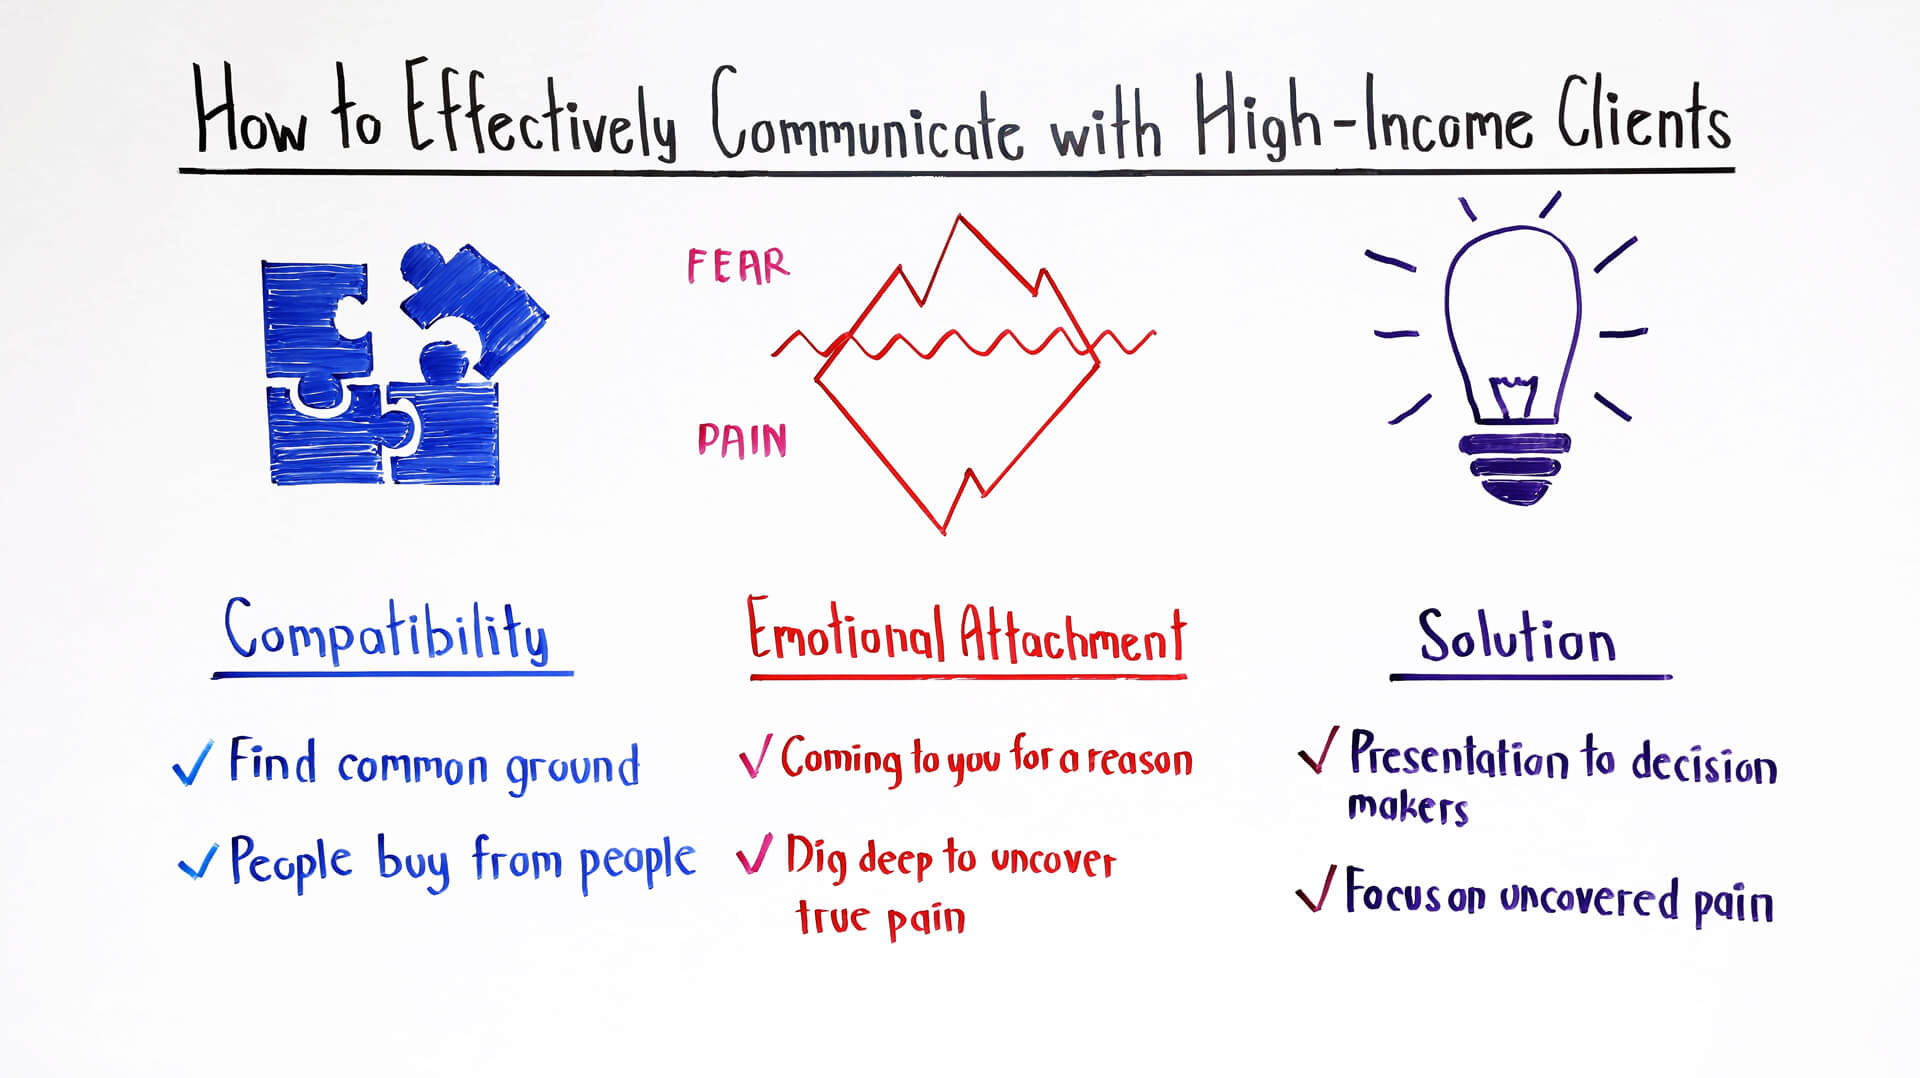 how to effectively communicate with high income clients